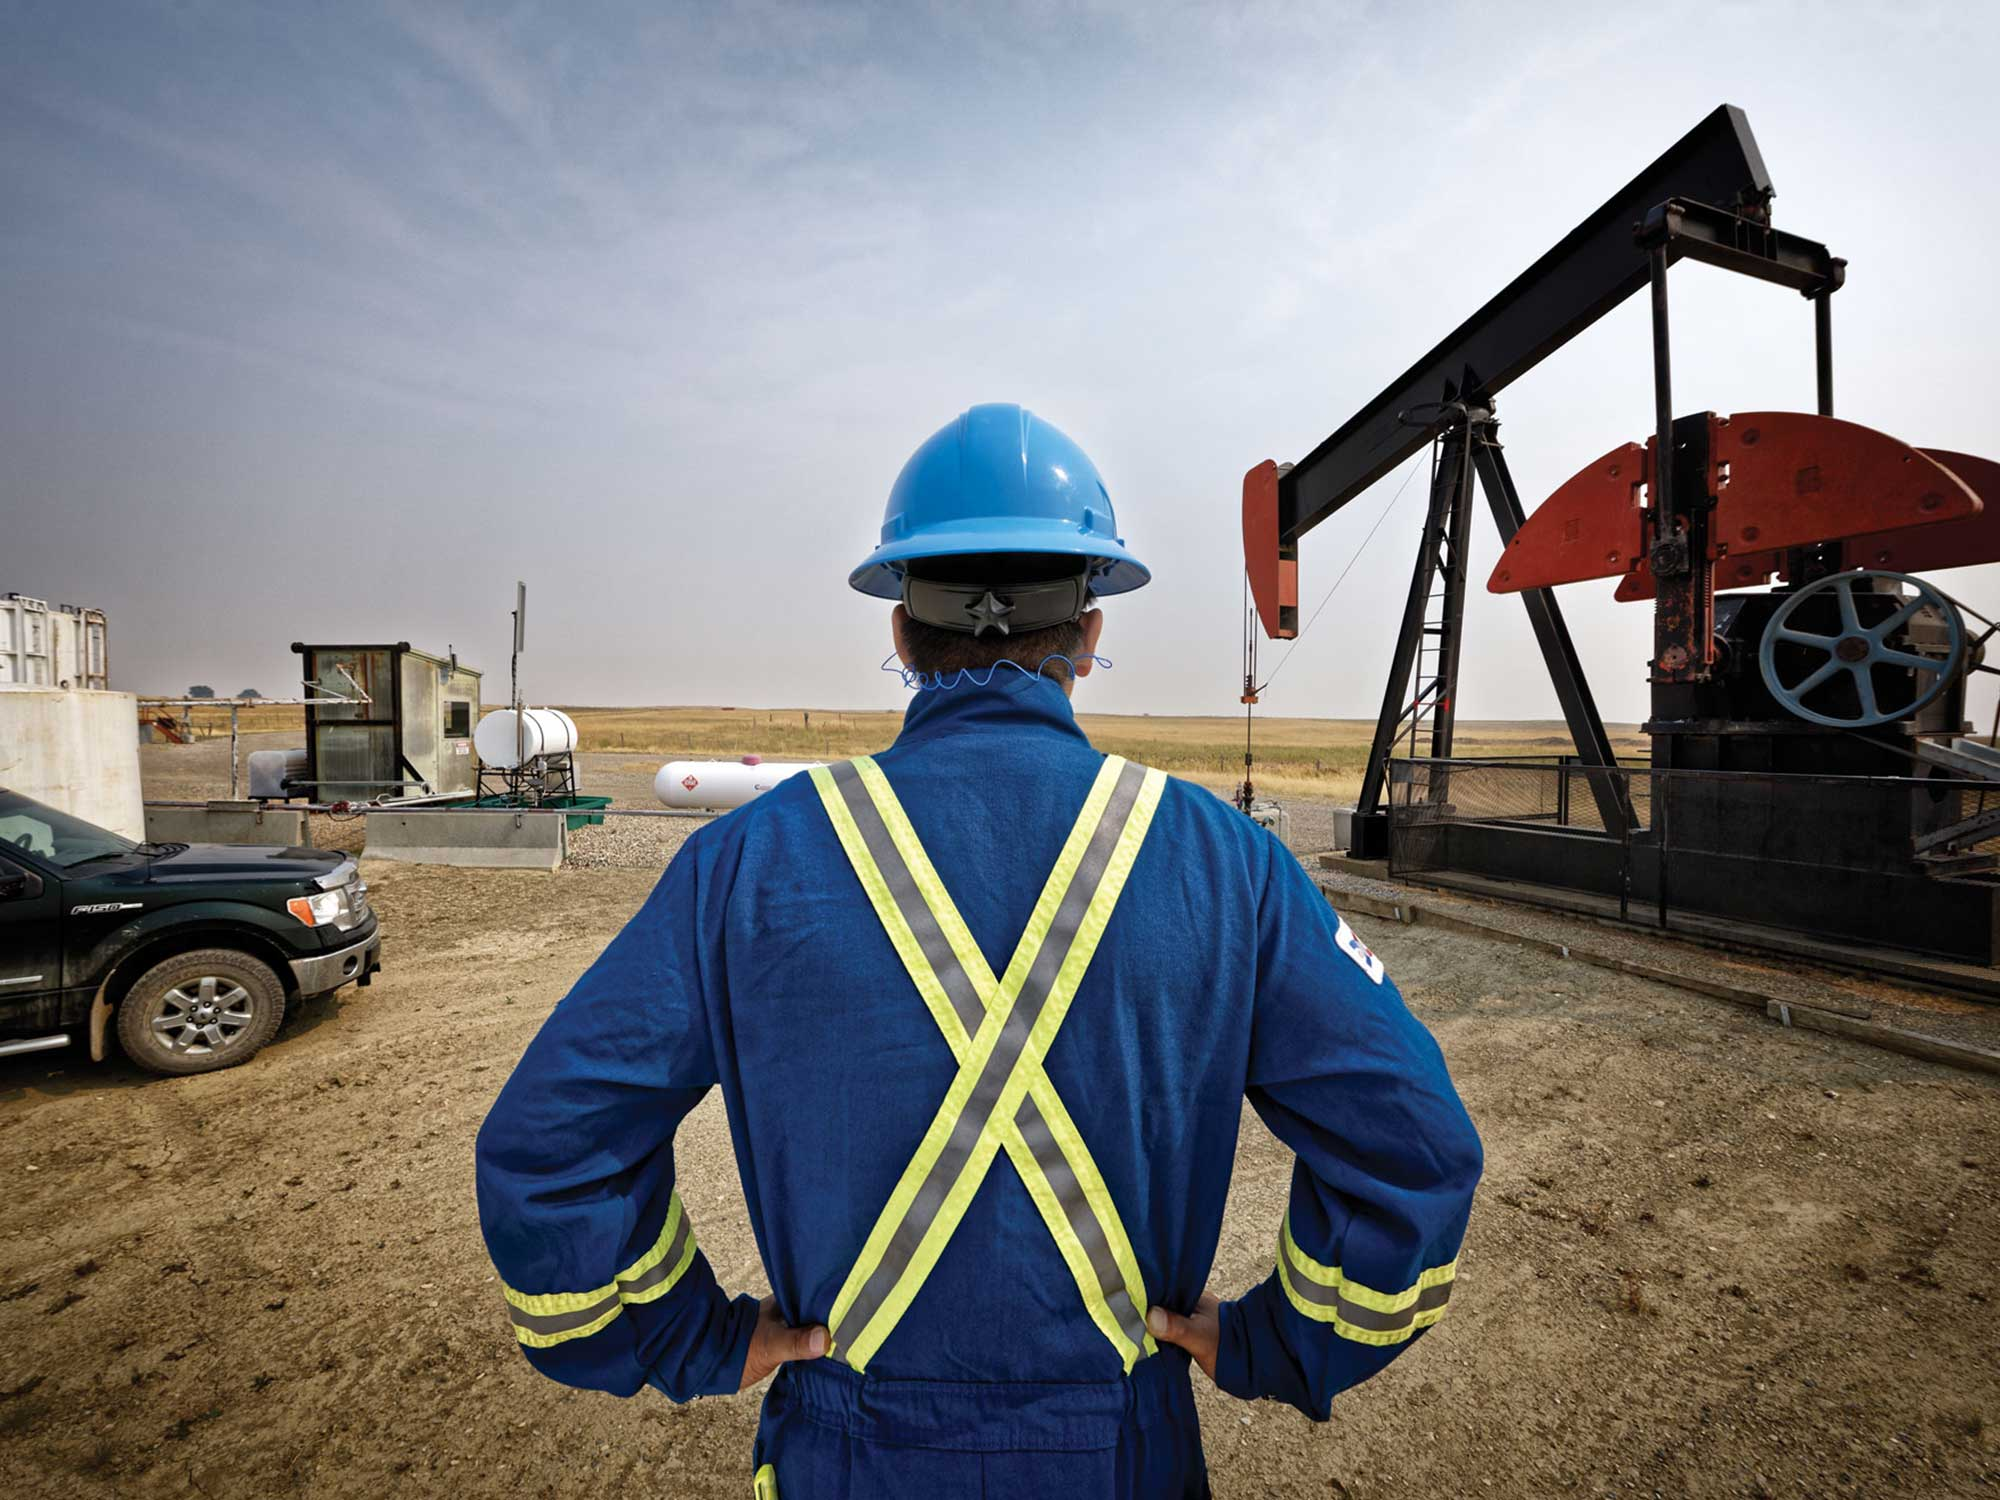 Brand photography for Energy Safety Canada by Jason Stand of a frontline oil and gas worker in front of a pumpjack on a worksite